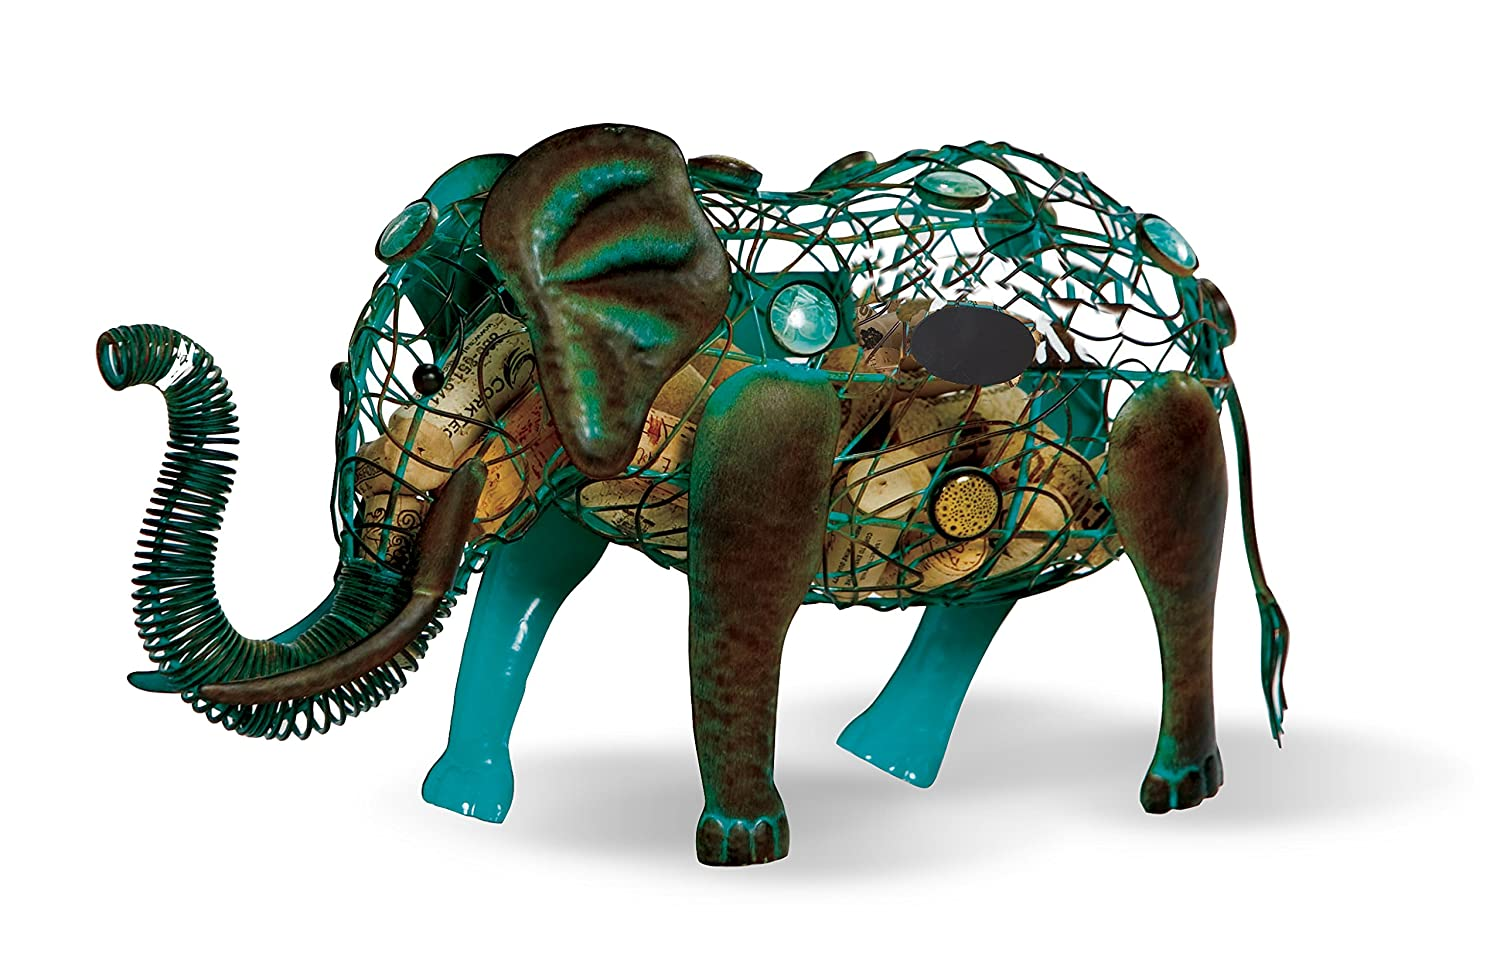 Elephant Cork Caddy Cork Holder By Picnic Plus Displays And Stores Wine Corks Over 54 Wine Corks